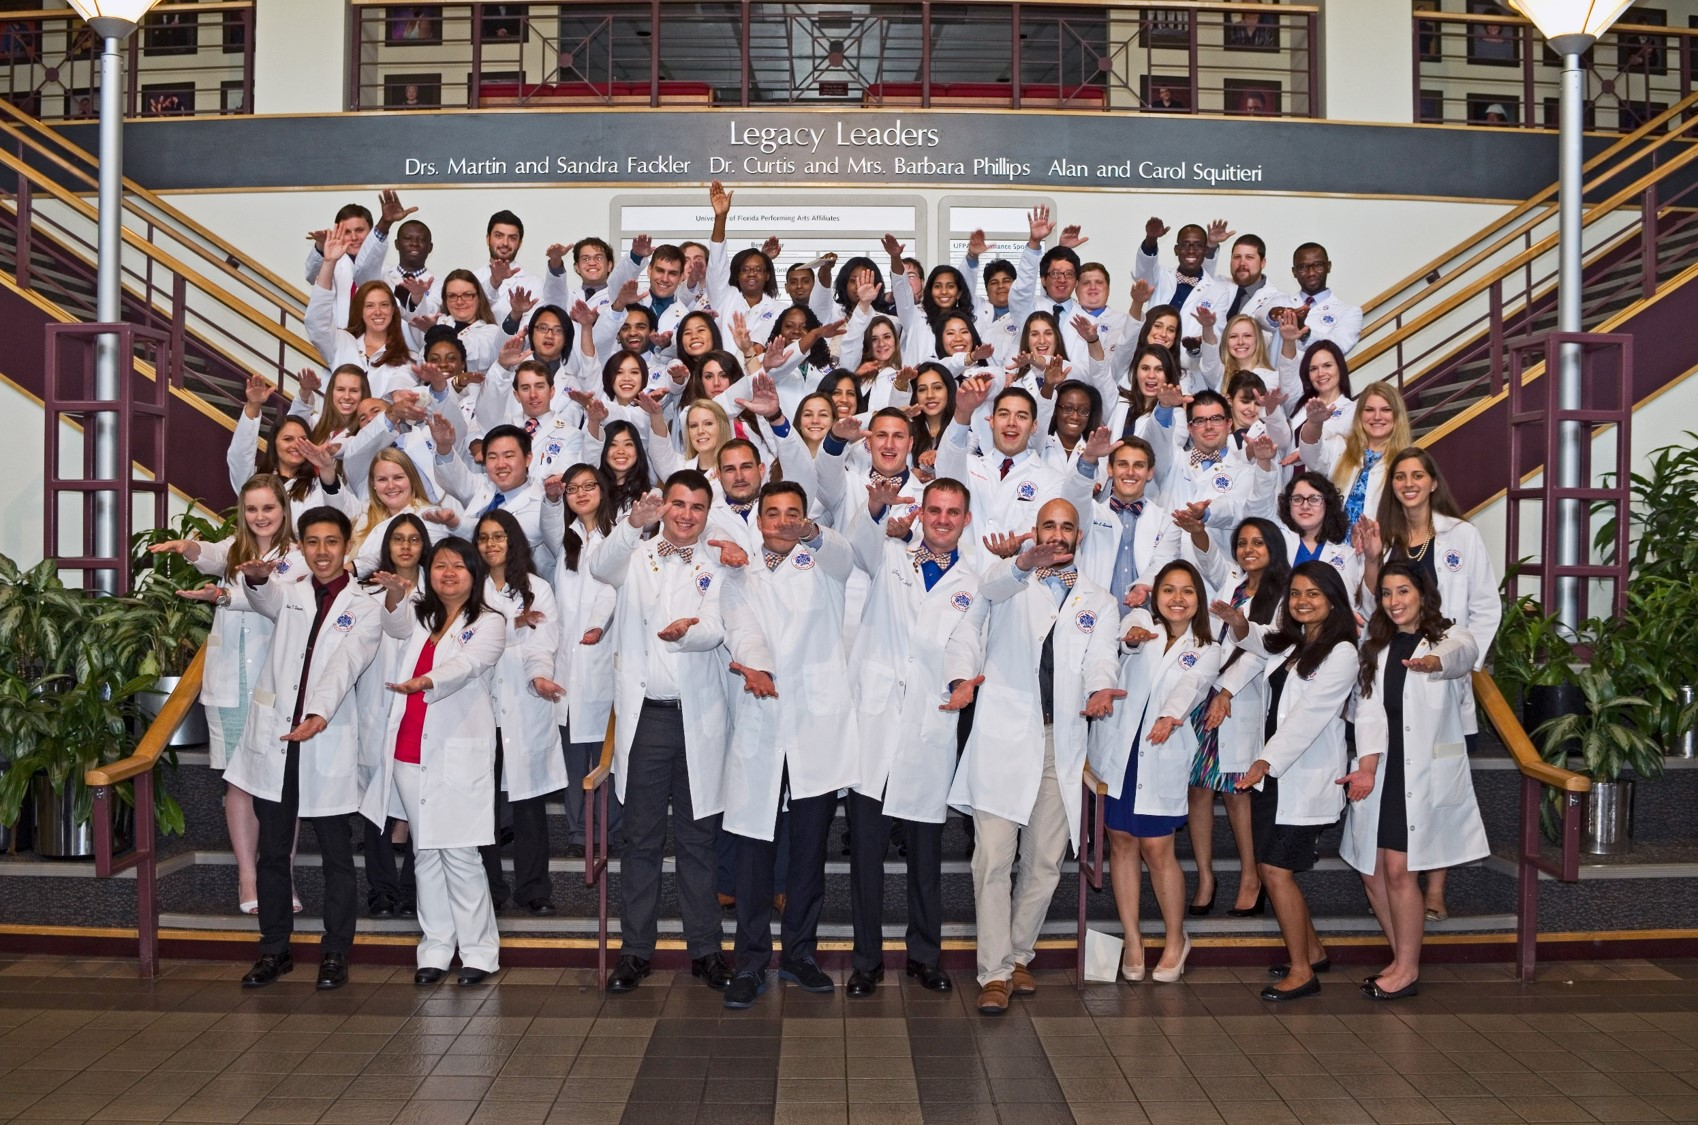 Pharmacy Class at their White Coat Ceremony